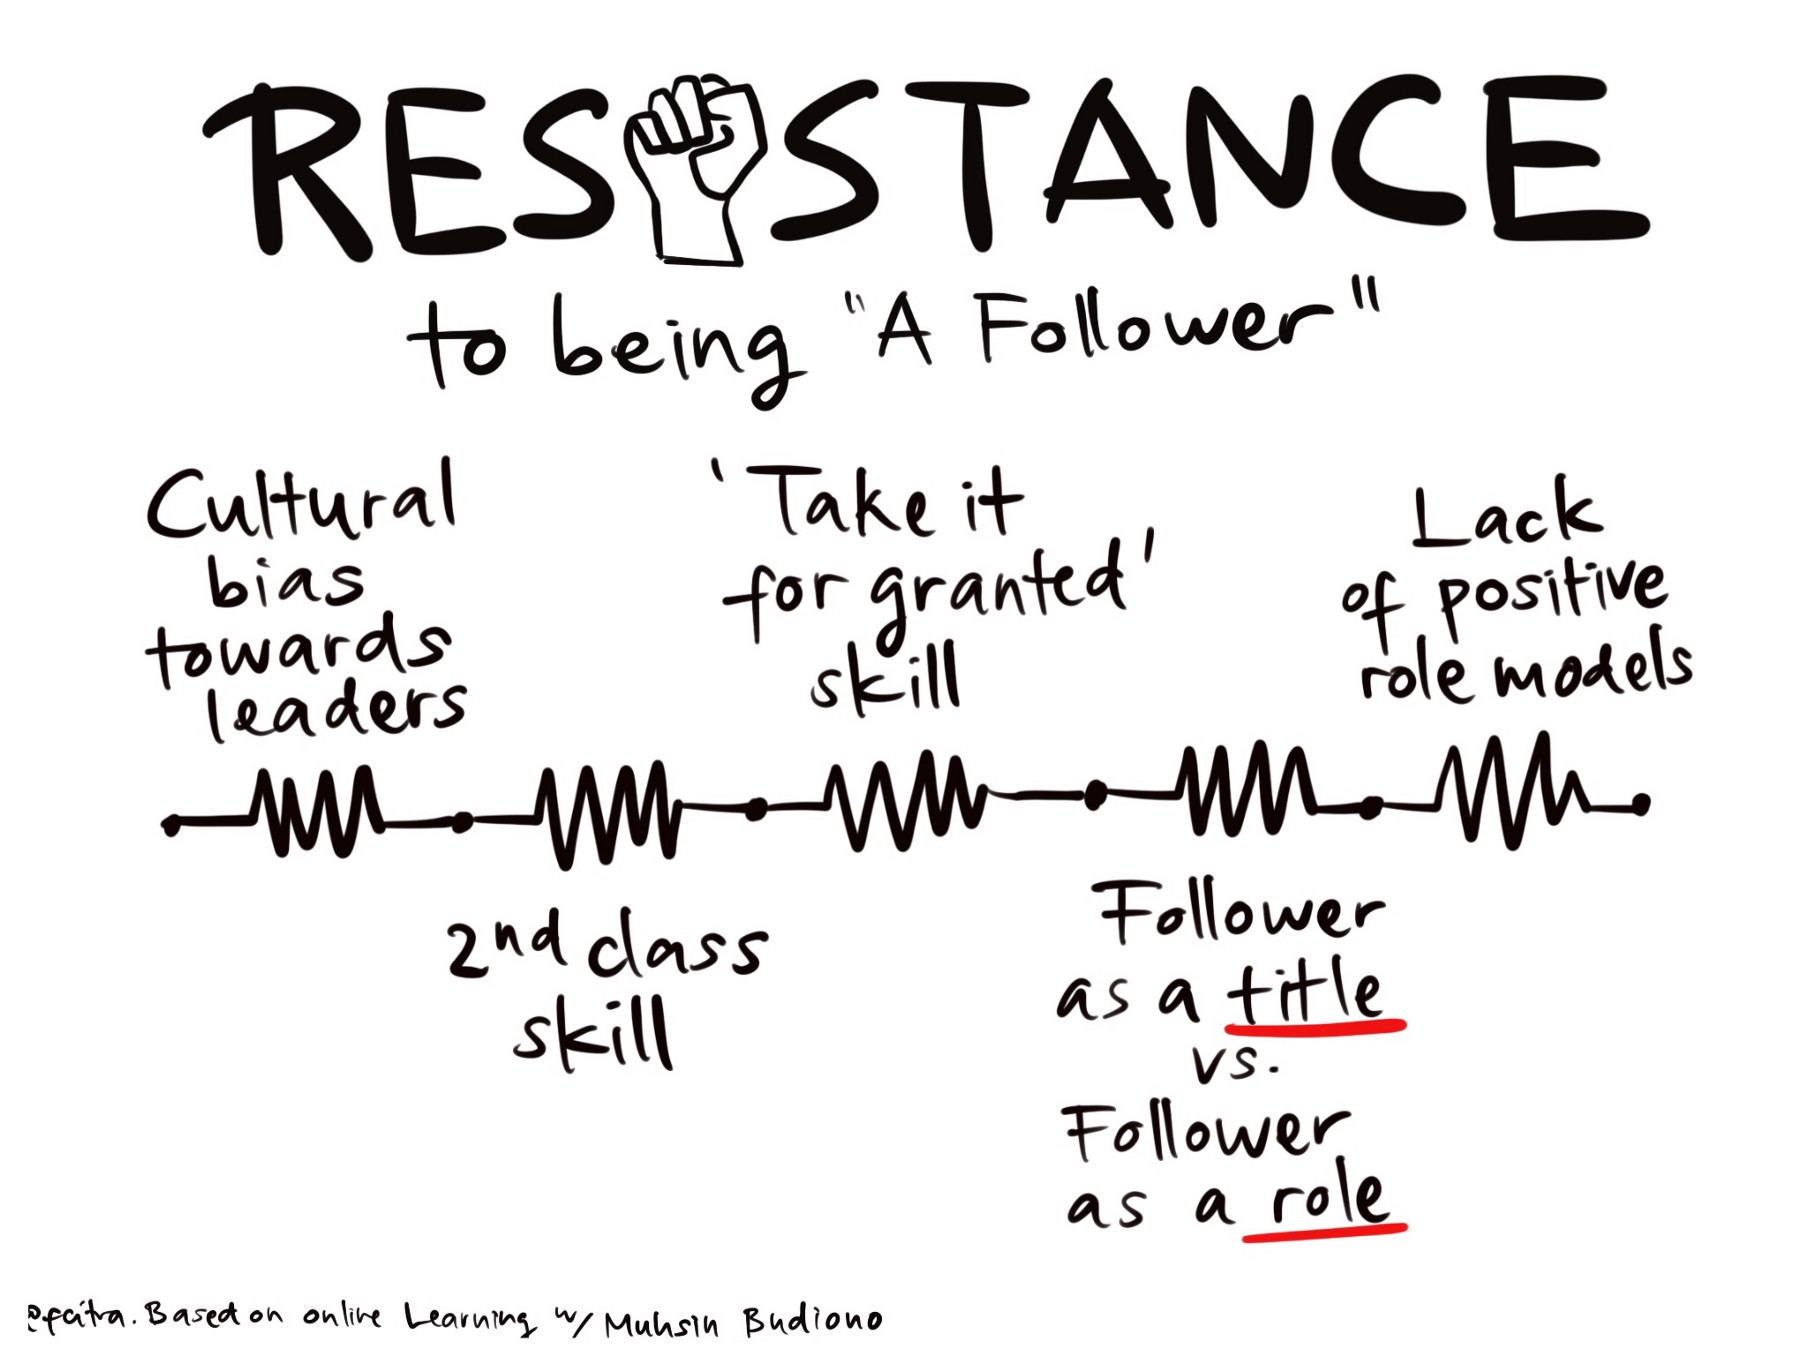 Resistance to being a 'Follower'. Illustration by @fcitra based on presentation by Muhsin Budiono